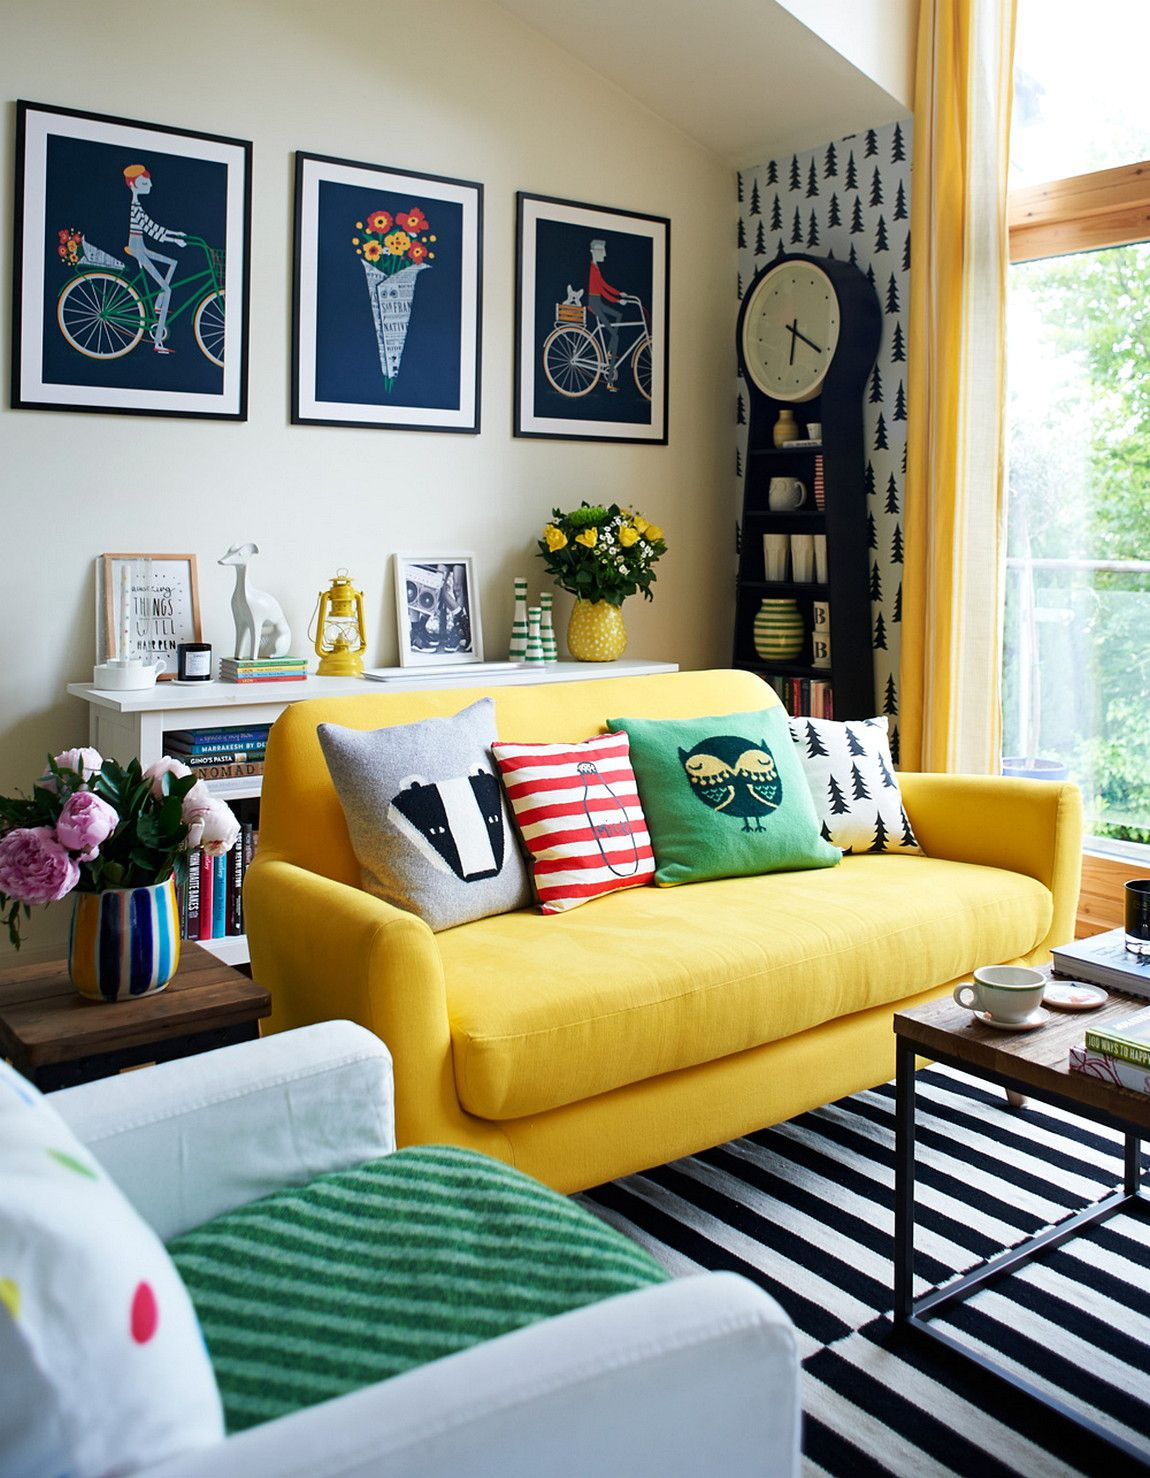 Beau 100+ Eclectic And Quirky Living Room Decor